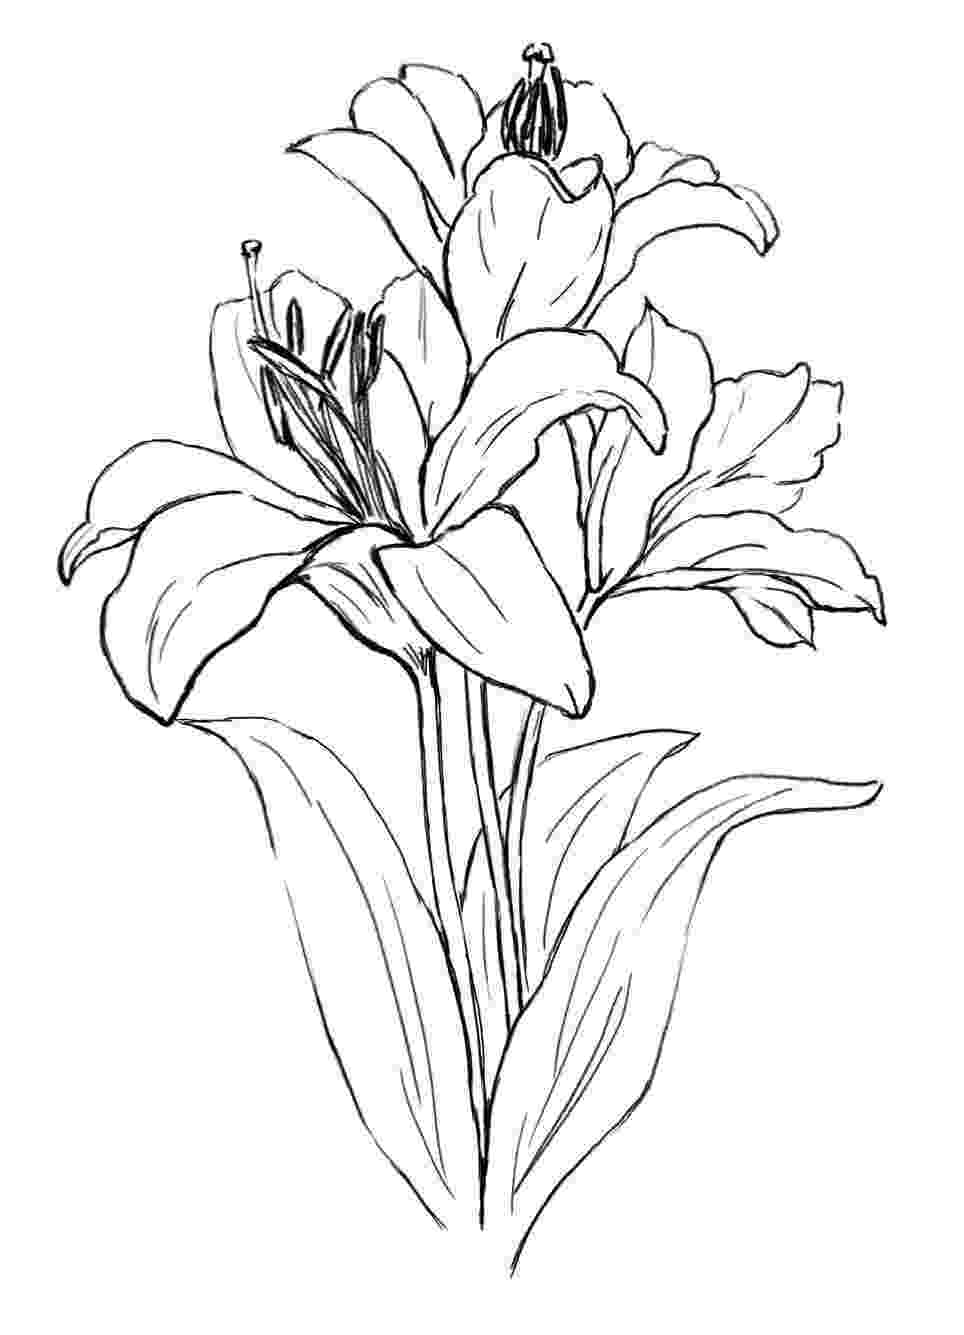 lily sketch realistic flower drawing at getdrawings free download lily sketch